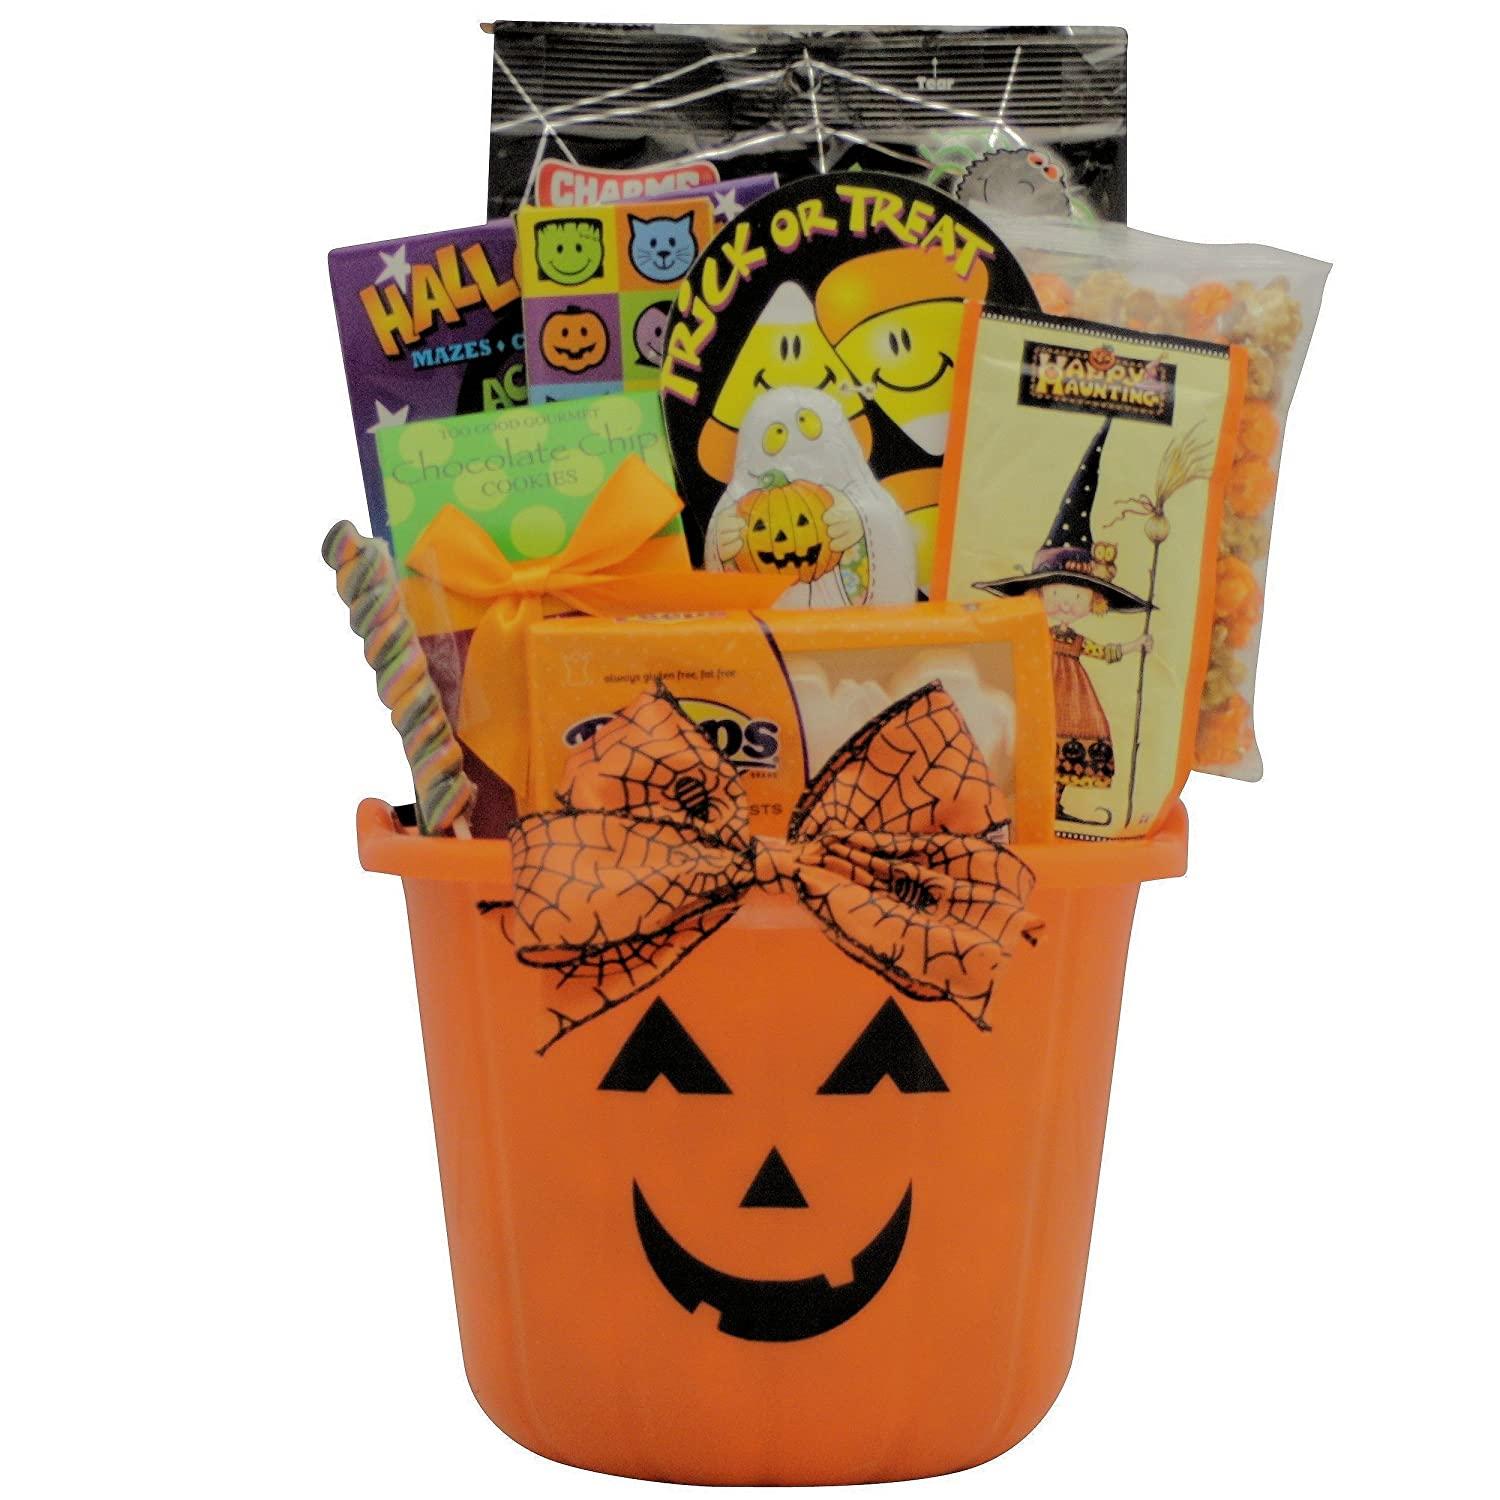 Halloween Gift Basket Ideas For Adults.Greatarrivals Gift Baskets Spooky Sweets Treats Halloween Gift